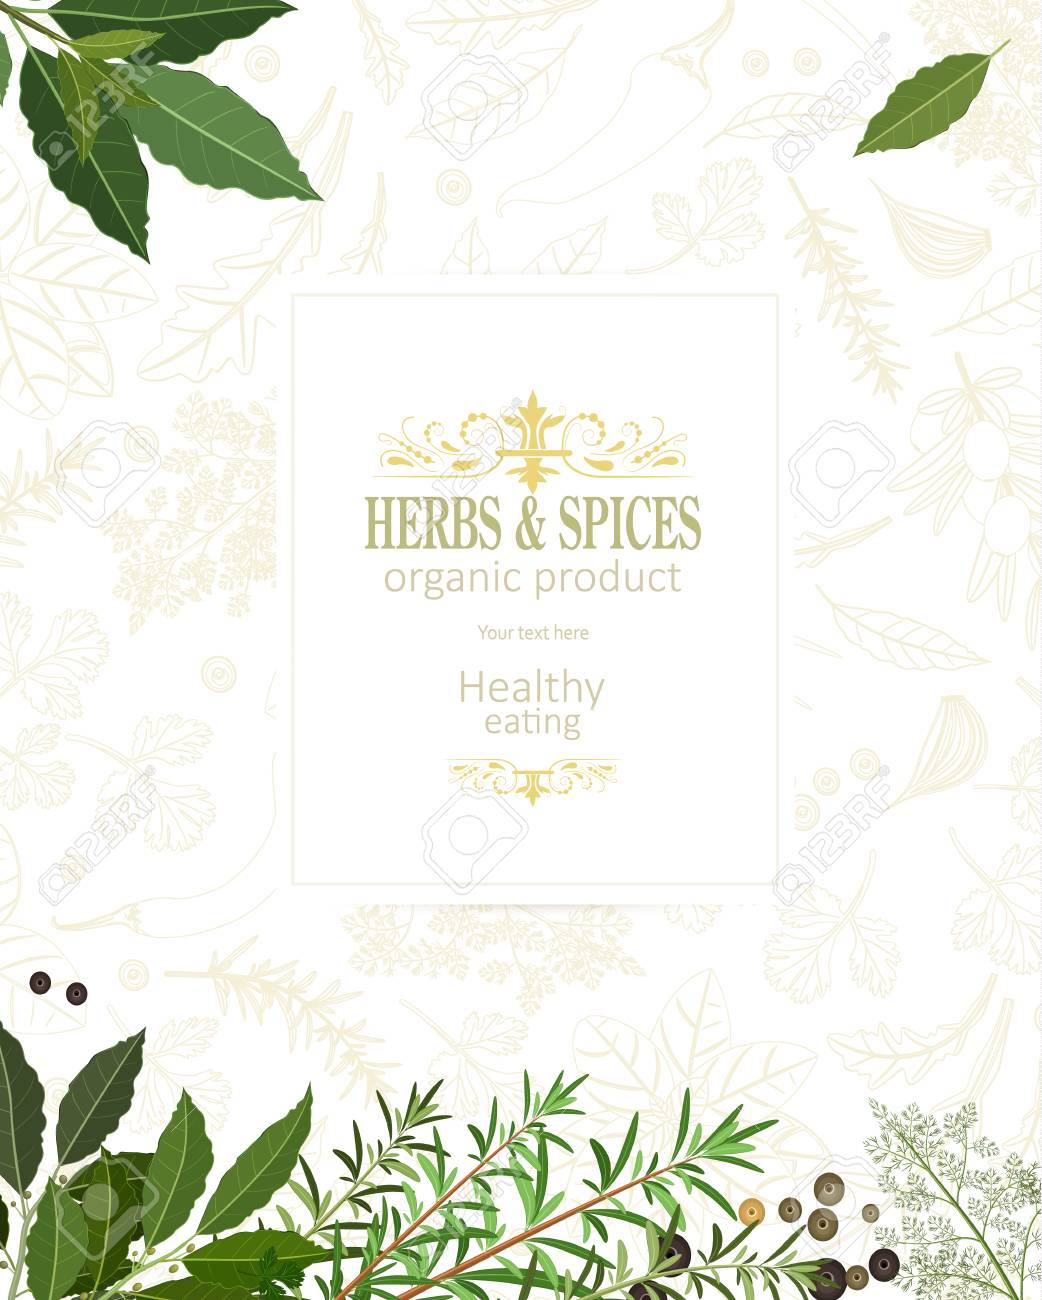 Organic Banner With Fresh Herbs And Spices Template Royalty Free Cliparts Vectors And Stock Illustration Image 90945726